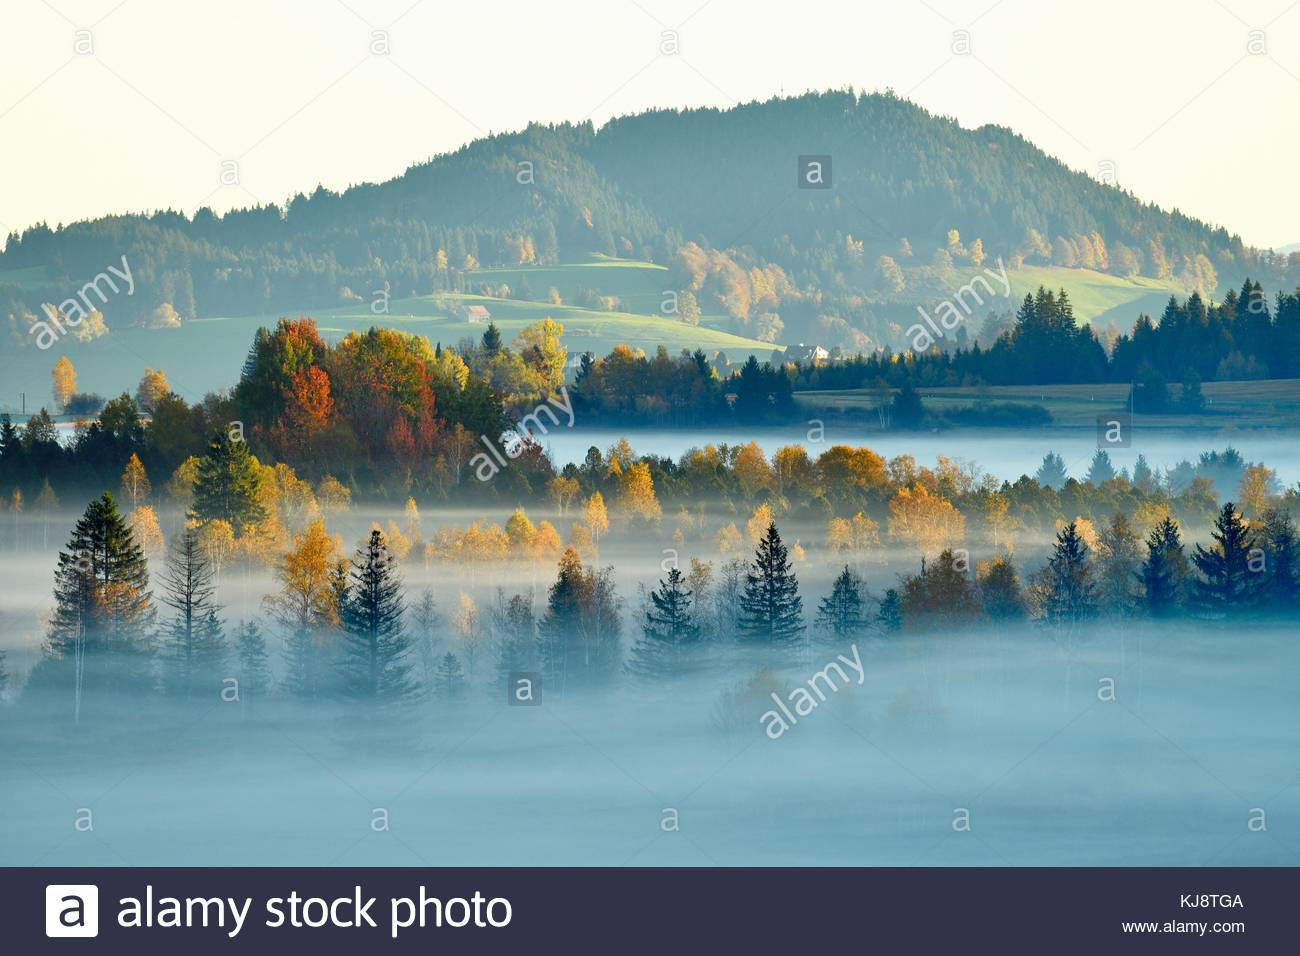 Moor, trees in the morning mist, Rothenthurm, Canton Schwyz, Switzerland - Stock Image